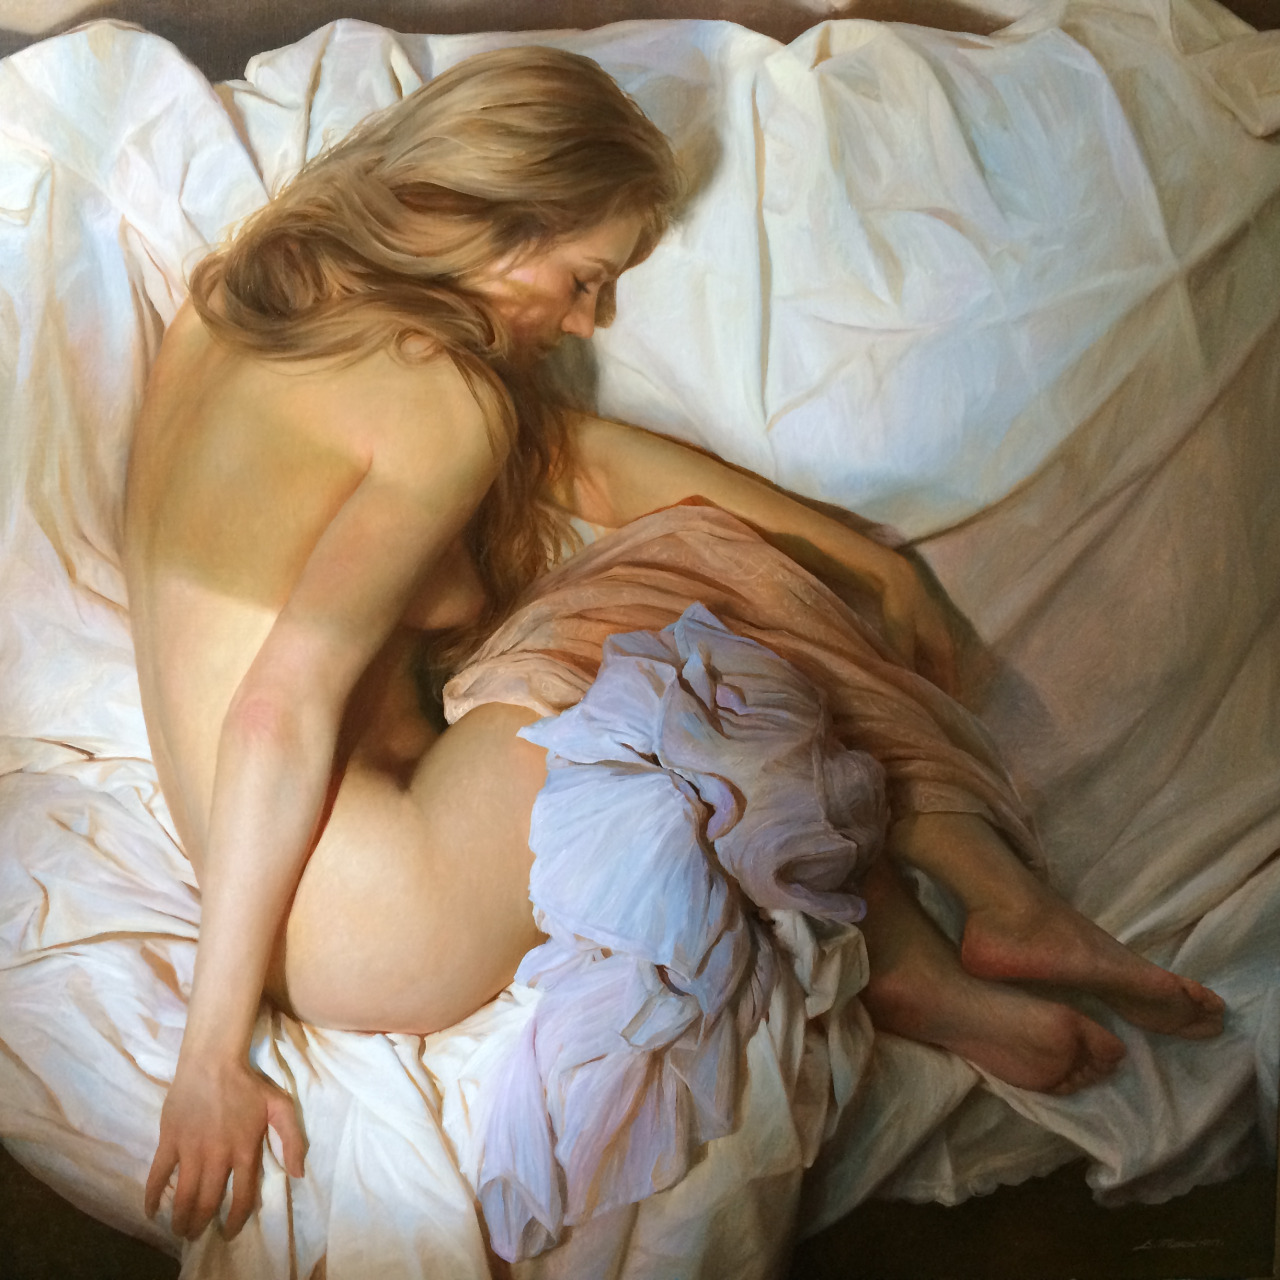 Serge Marshennikov, 1971 - Sleeping beauty